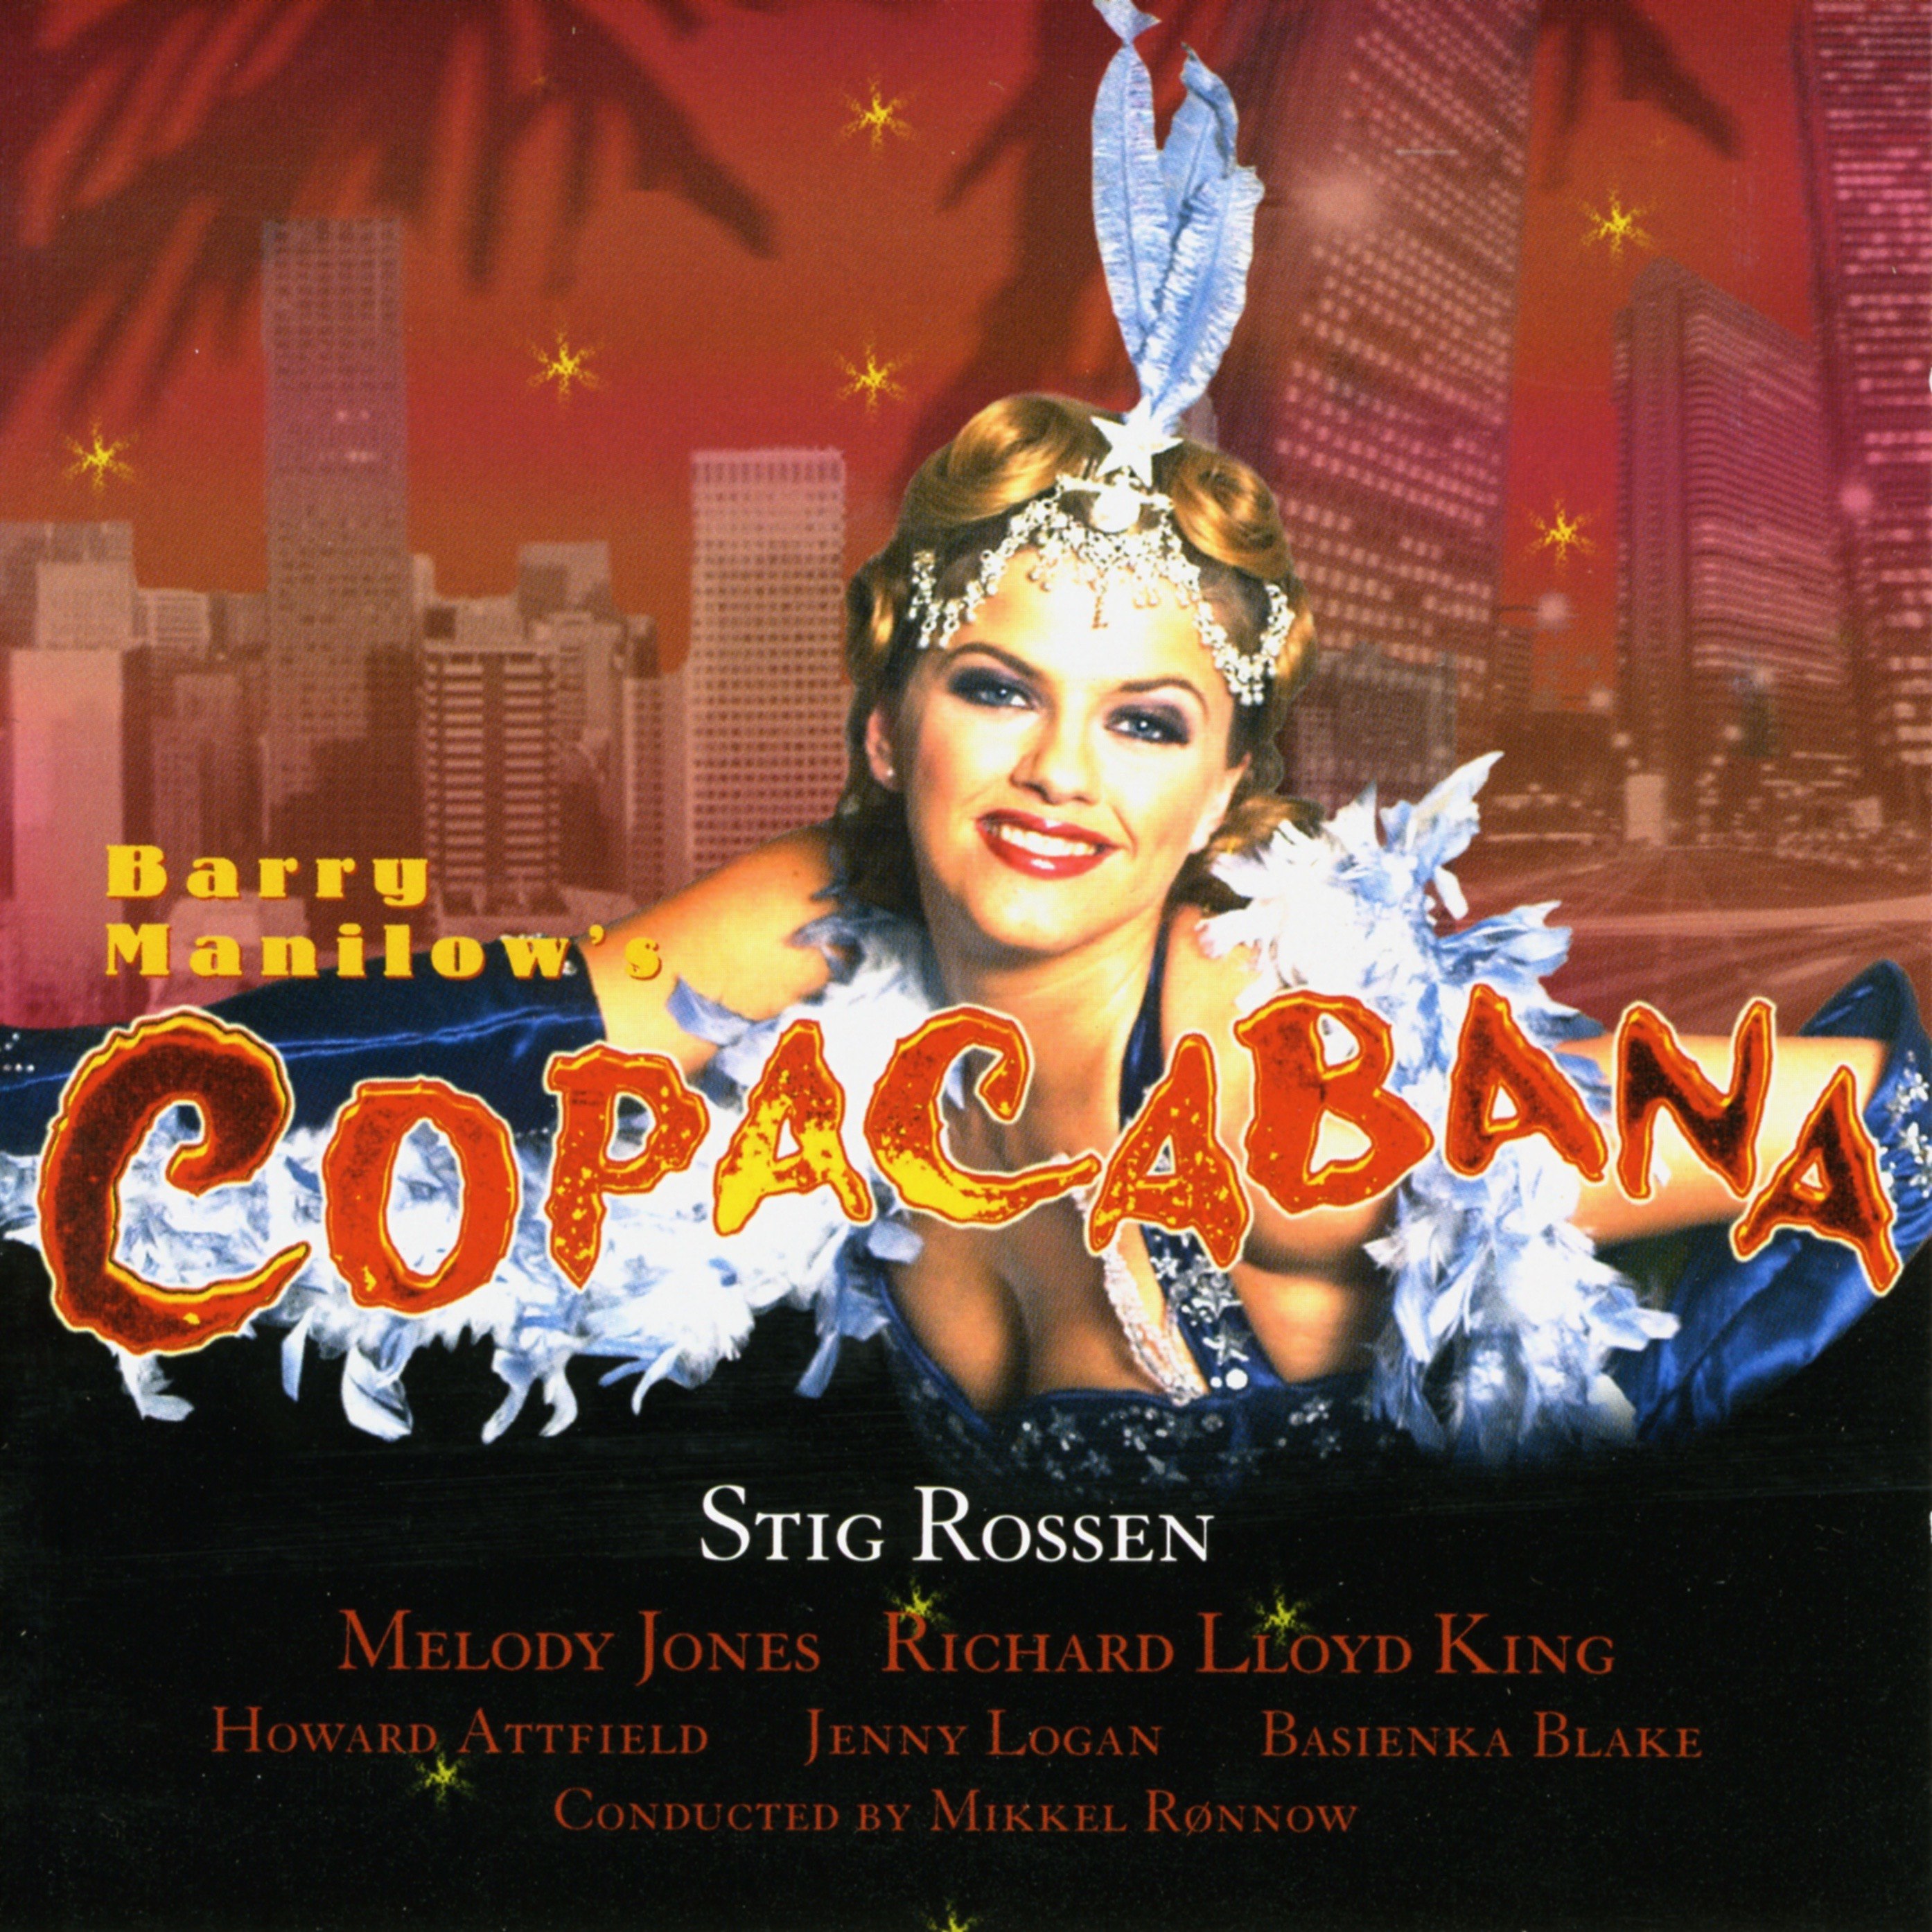 Copacabana 2003 Cast Recording